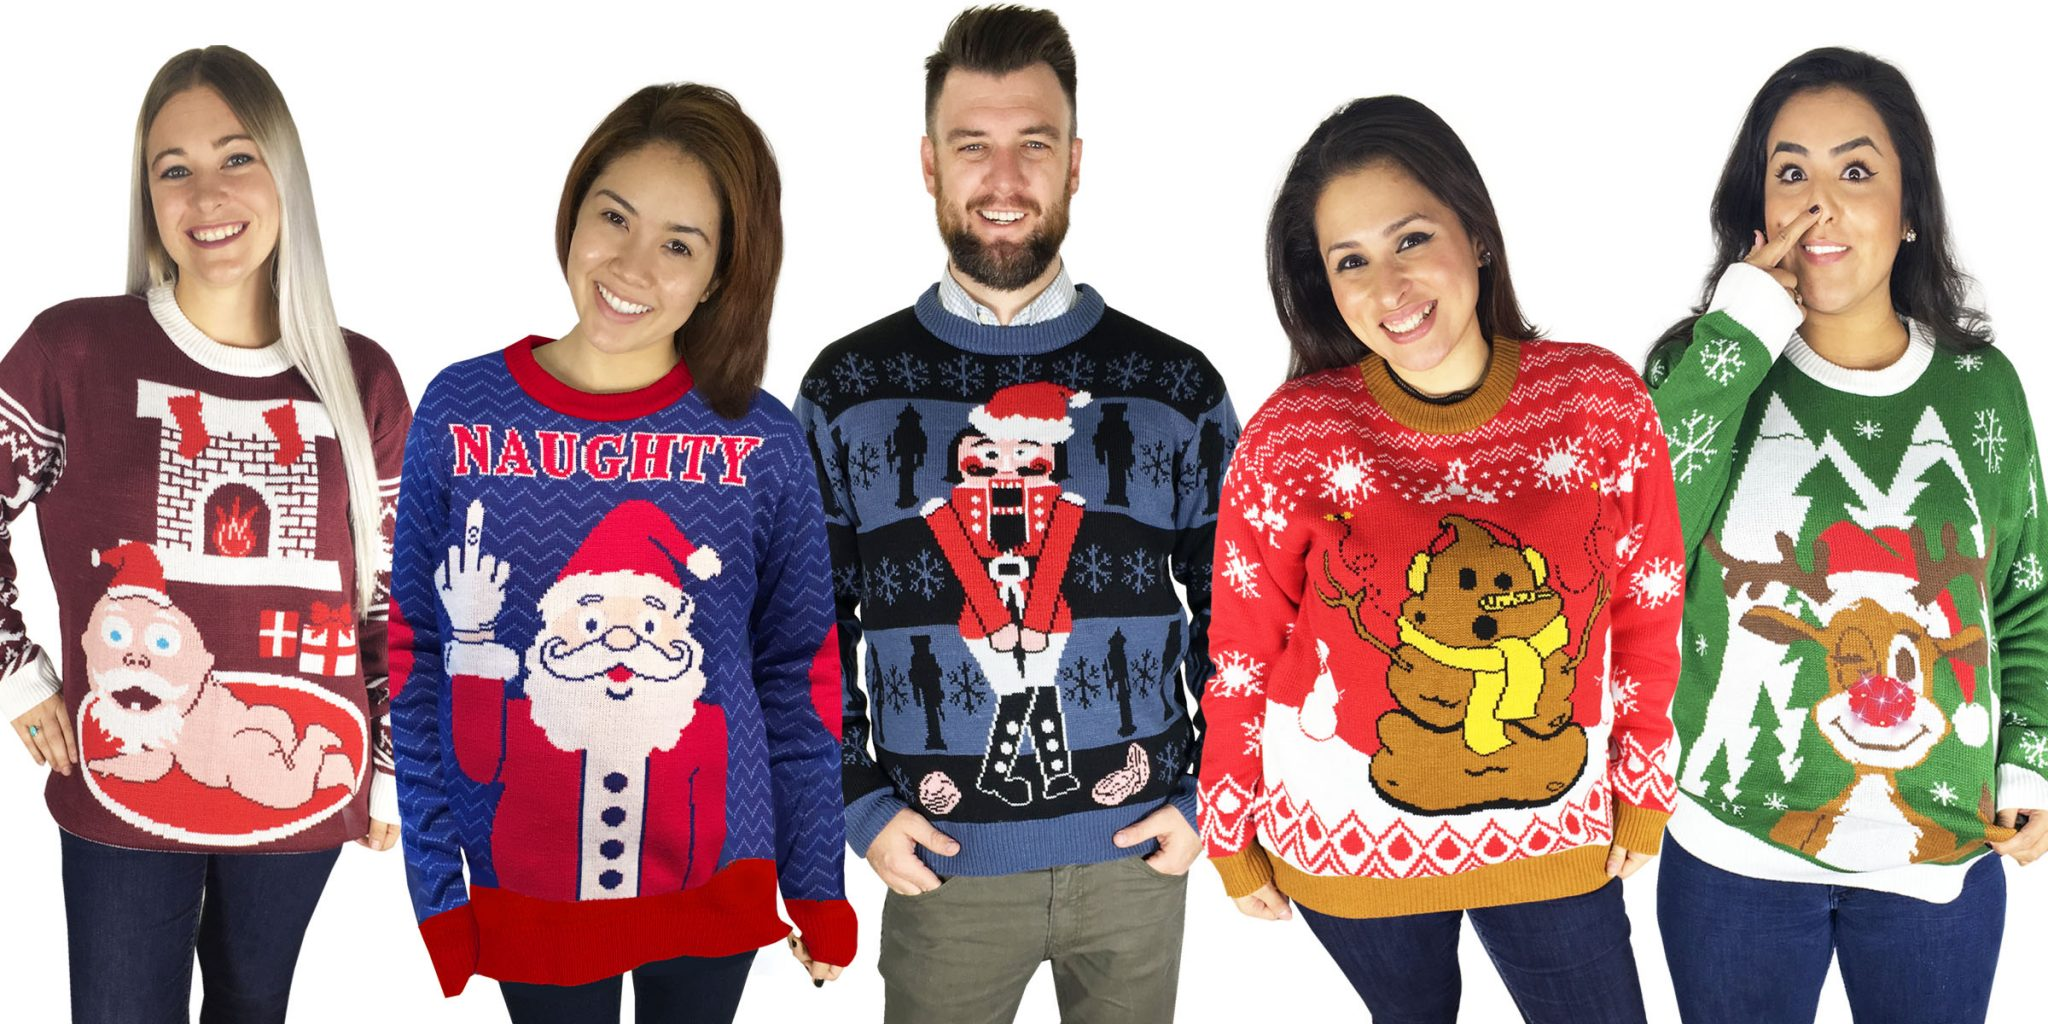 Ugly Sweaters on people